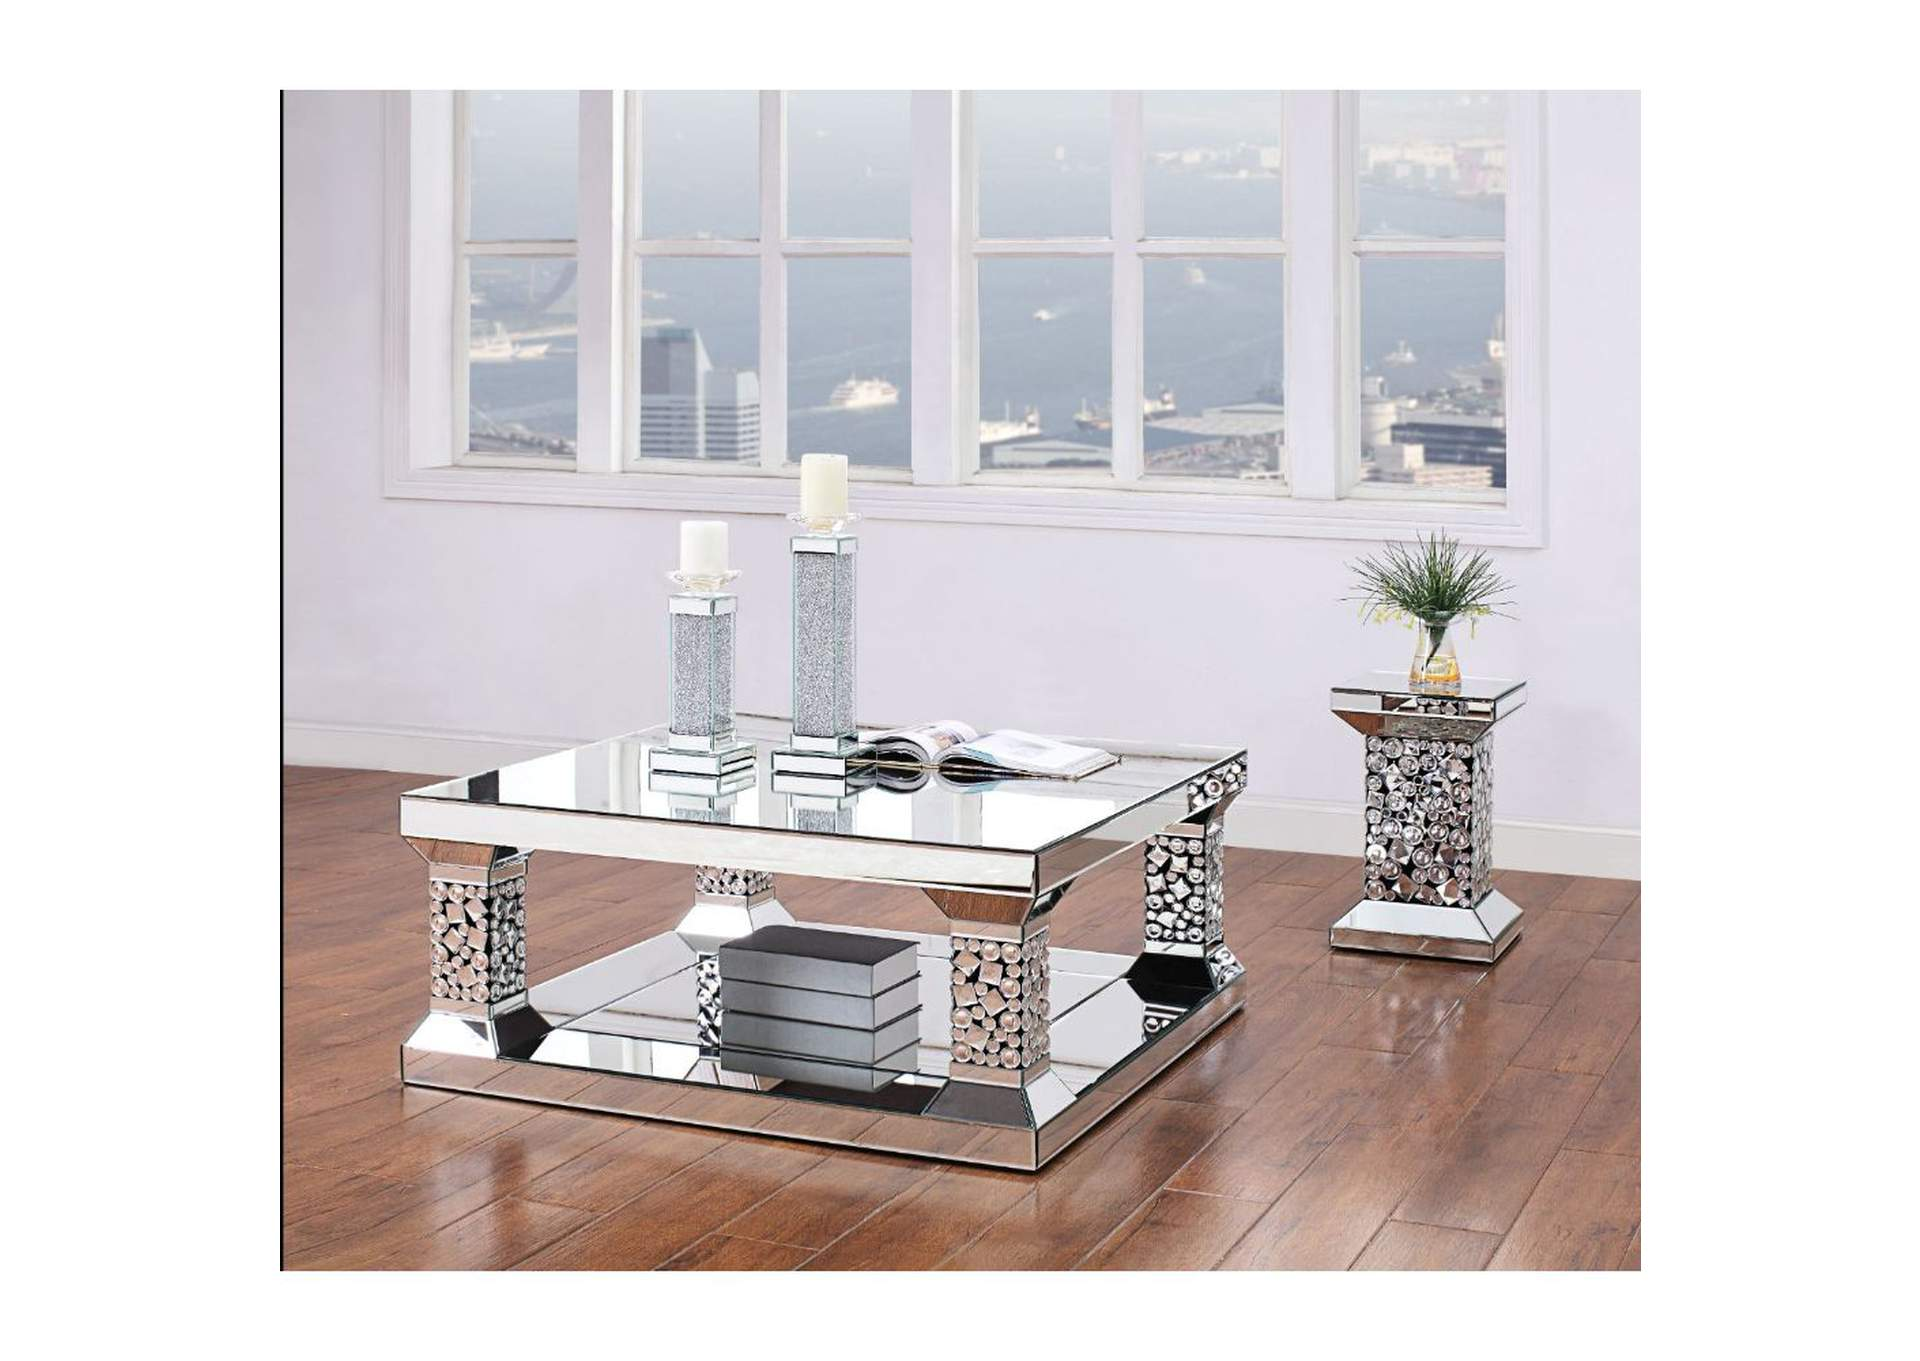 Kachina Mirrored & Faux Gems Coffee Table,Acme